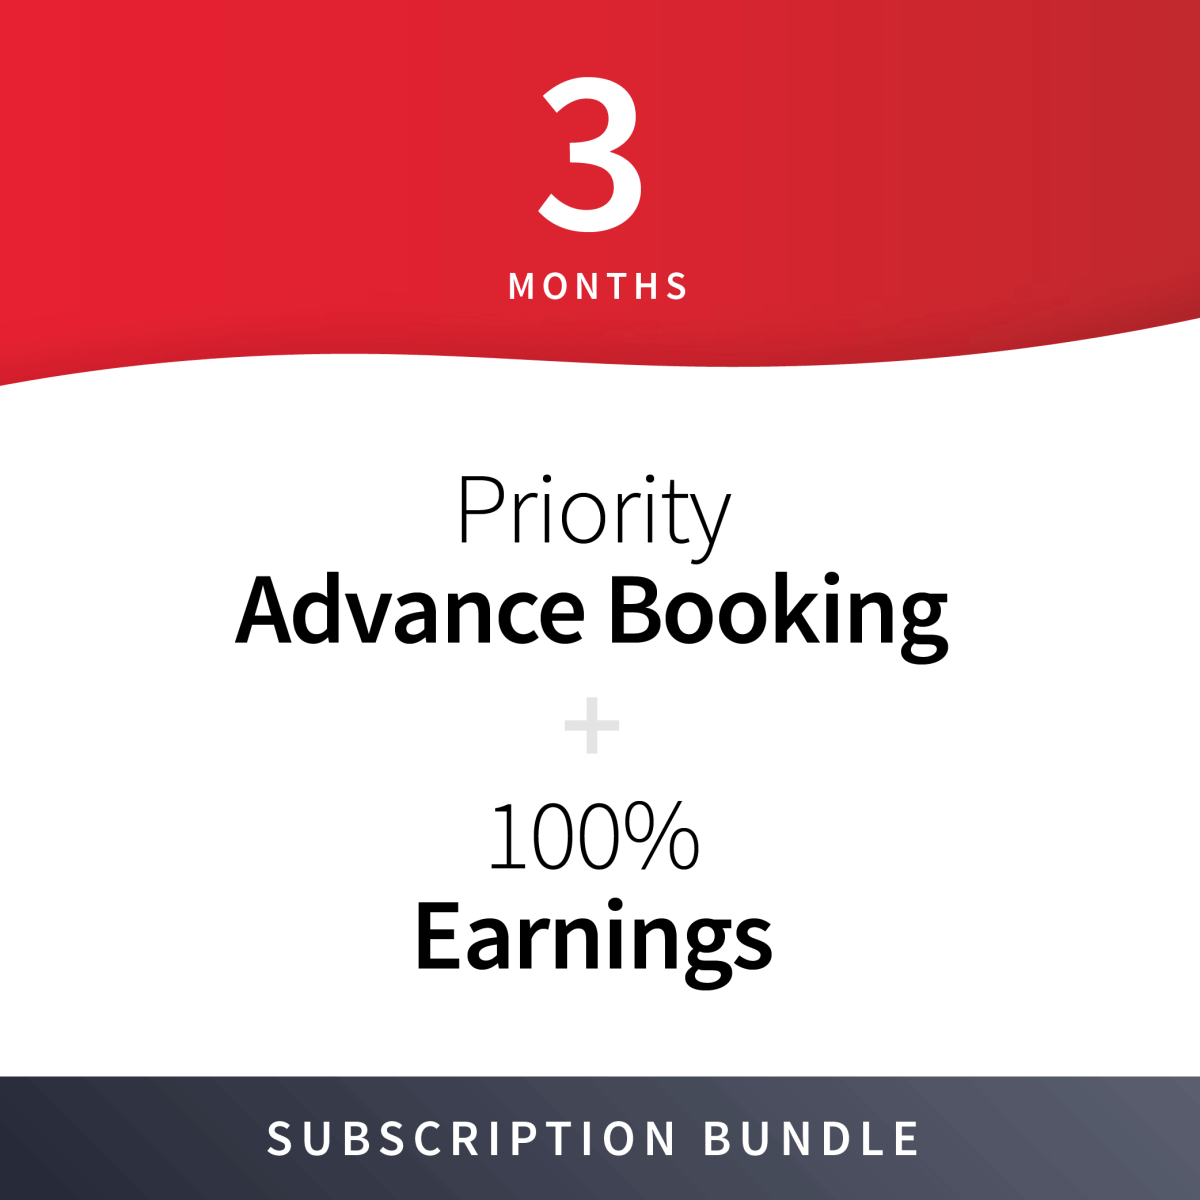 100% Earnings + Priority Advance Booking Subscription Bundle - 3 Months 4